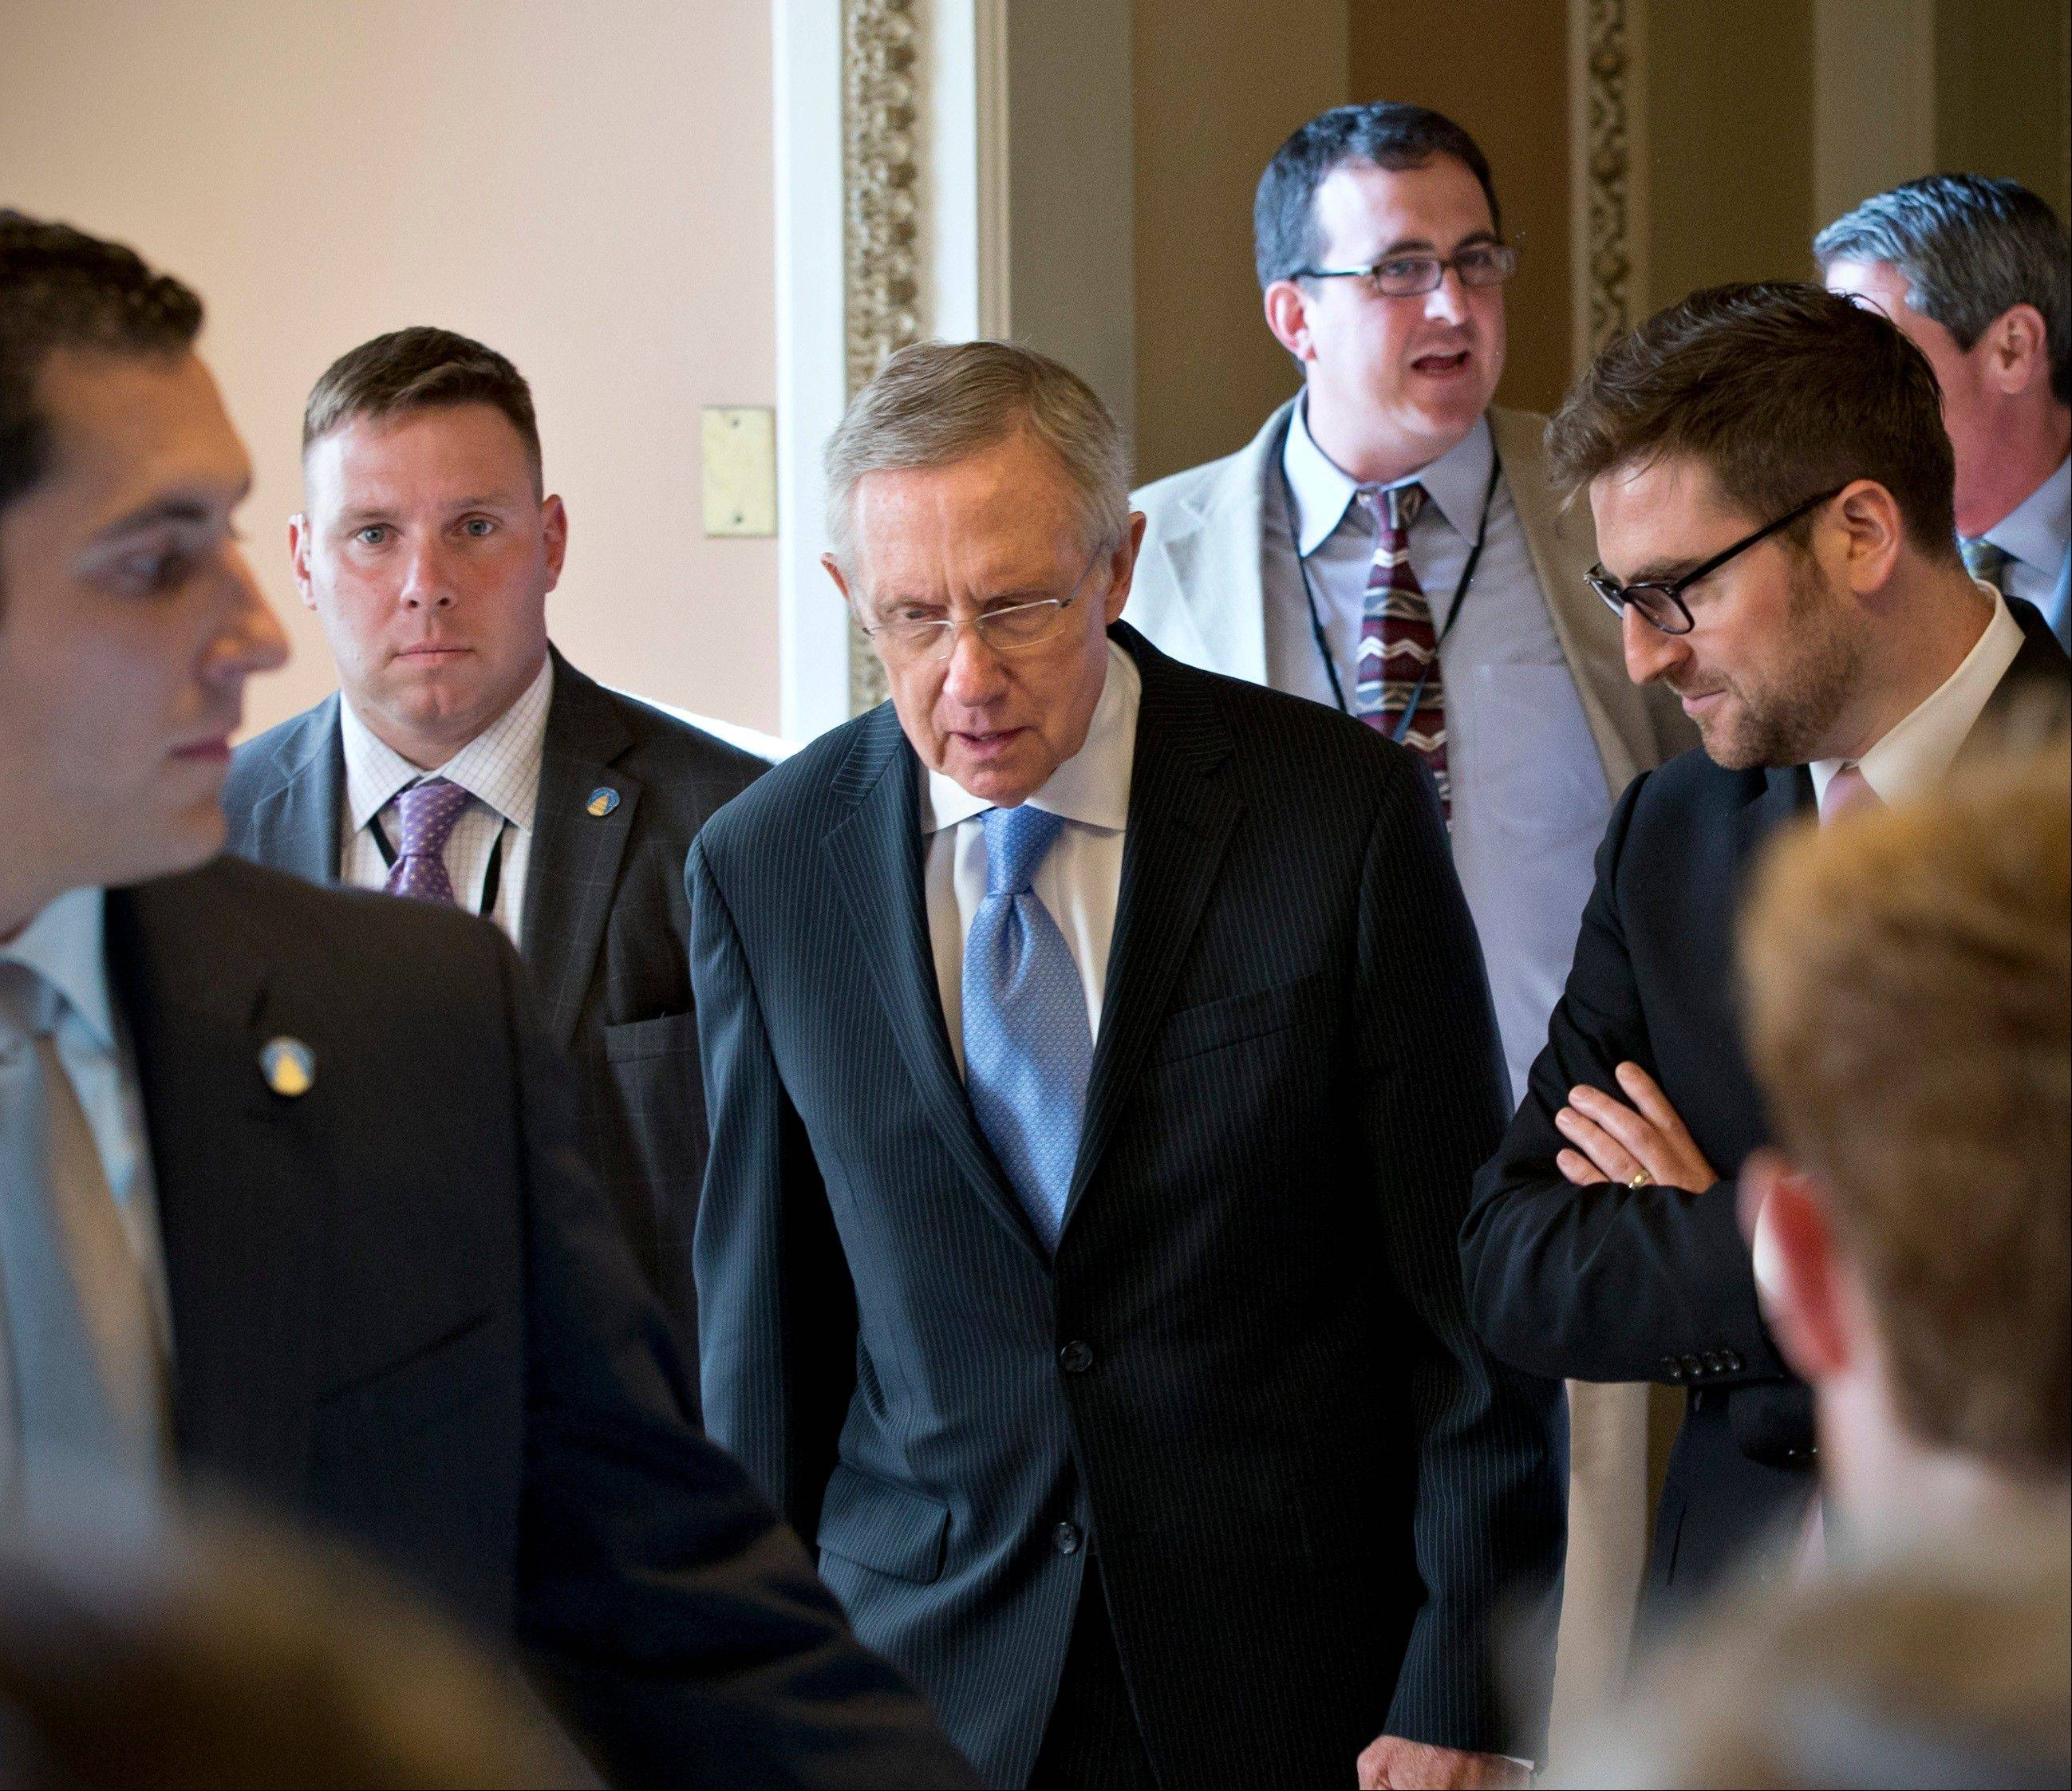 Threats by Senate Majority Leader Harry Reid to change the Senate�s long-standing filibuster rules apparently succeeded in winning a concession from Republicans, who appear willing to vote on several White House appointments.